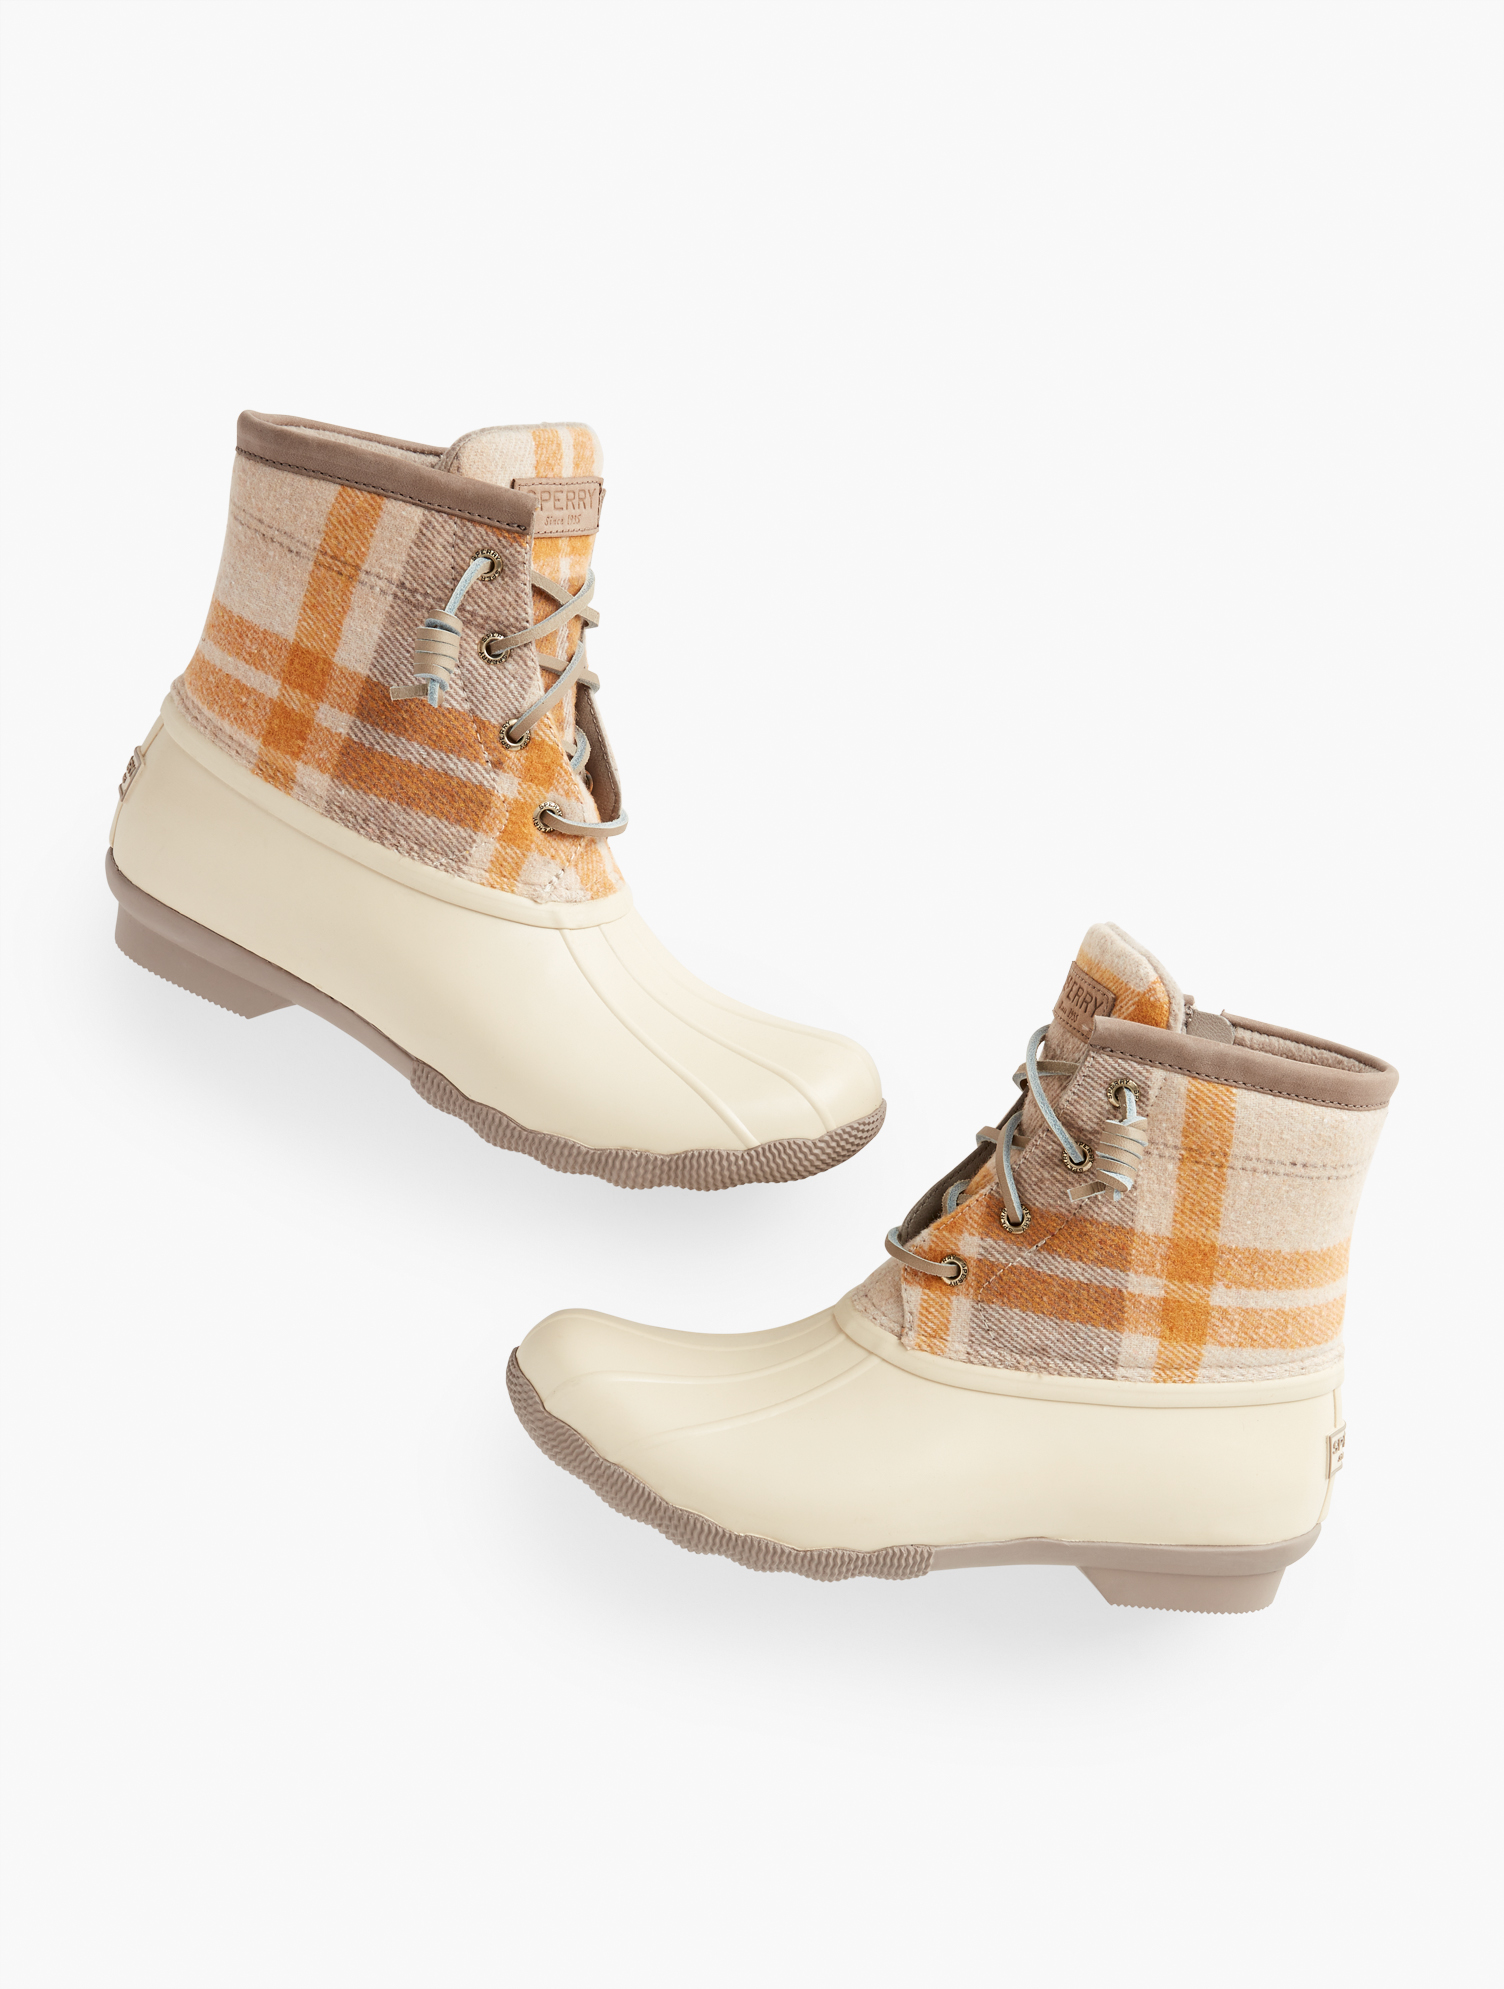 Vintage Winter Retro Boots – Snow, Rain, Cold Sperry Saltwater All Weather Boots - Wool Plaid - Ivory - 11M Talbots $100.00 AT vintagedancer.com